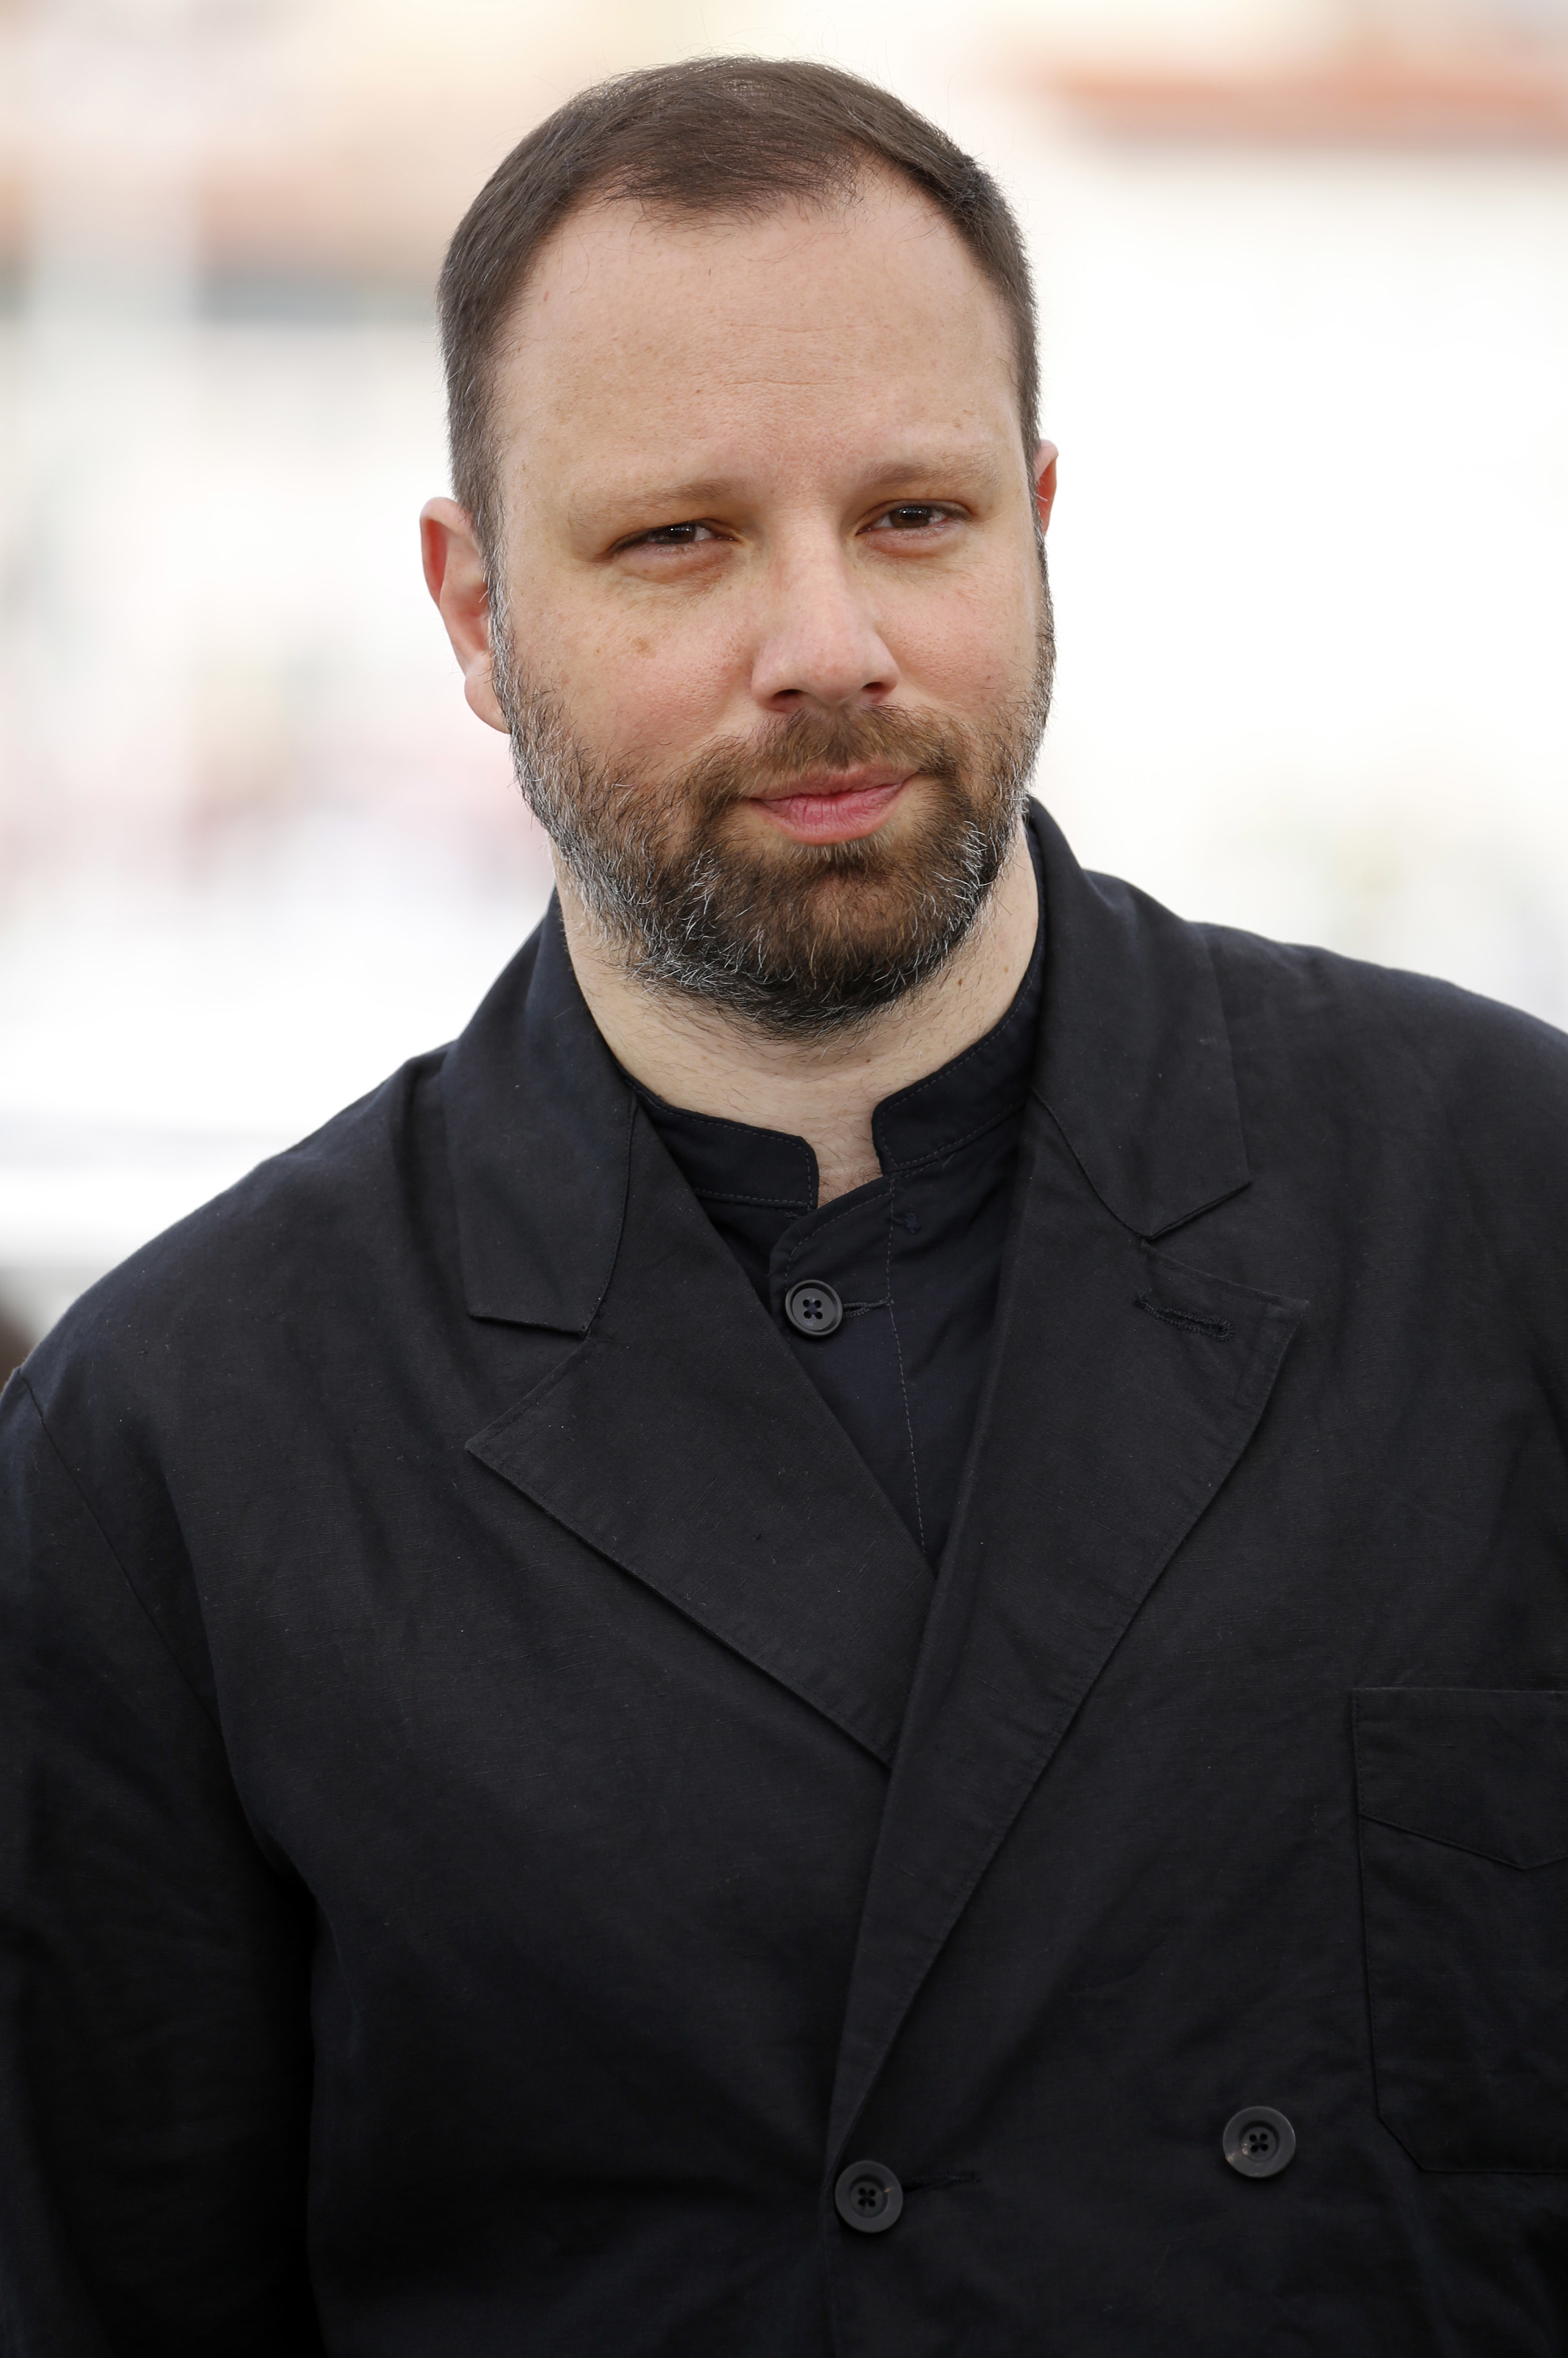 70th annual Cannes Film Festival - 'The Killing of a Sacred Deer' - Photocall  Featuring: Yorgos Lanthimos Where: Cannes, France When: 22 May 2017 Credit: Dave Bedrosian/Future Image/WENN.com  **Not available for publication in Germany**